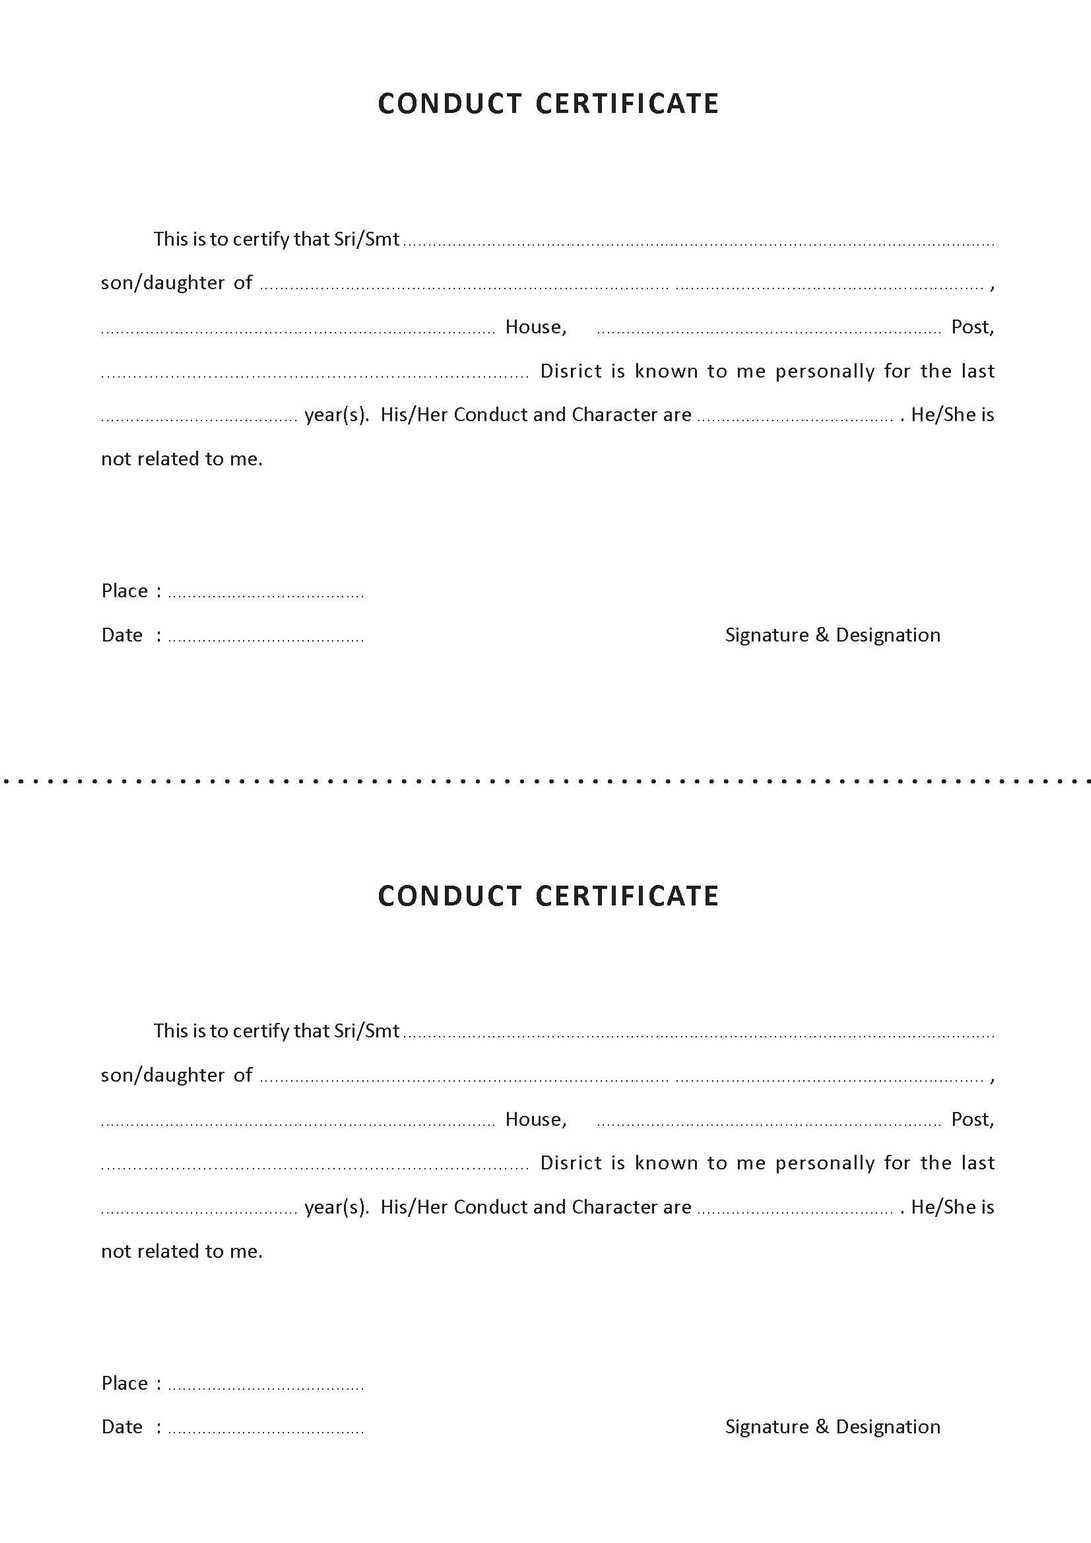 Conduct certificate format pdf kerala images certificate design conduct certificate format pdf kerala image collections conduct certificate format pdf kerala gallery certificate design conduct yadclub Image collections